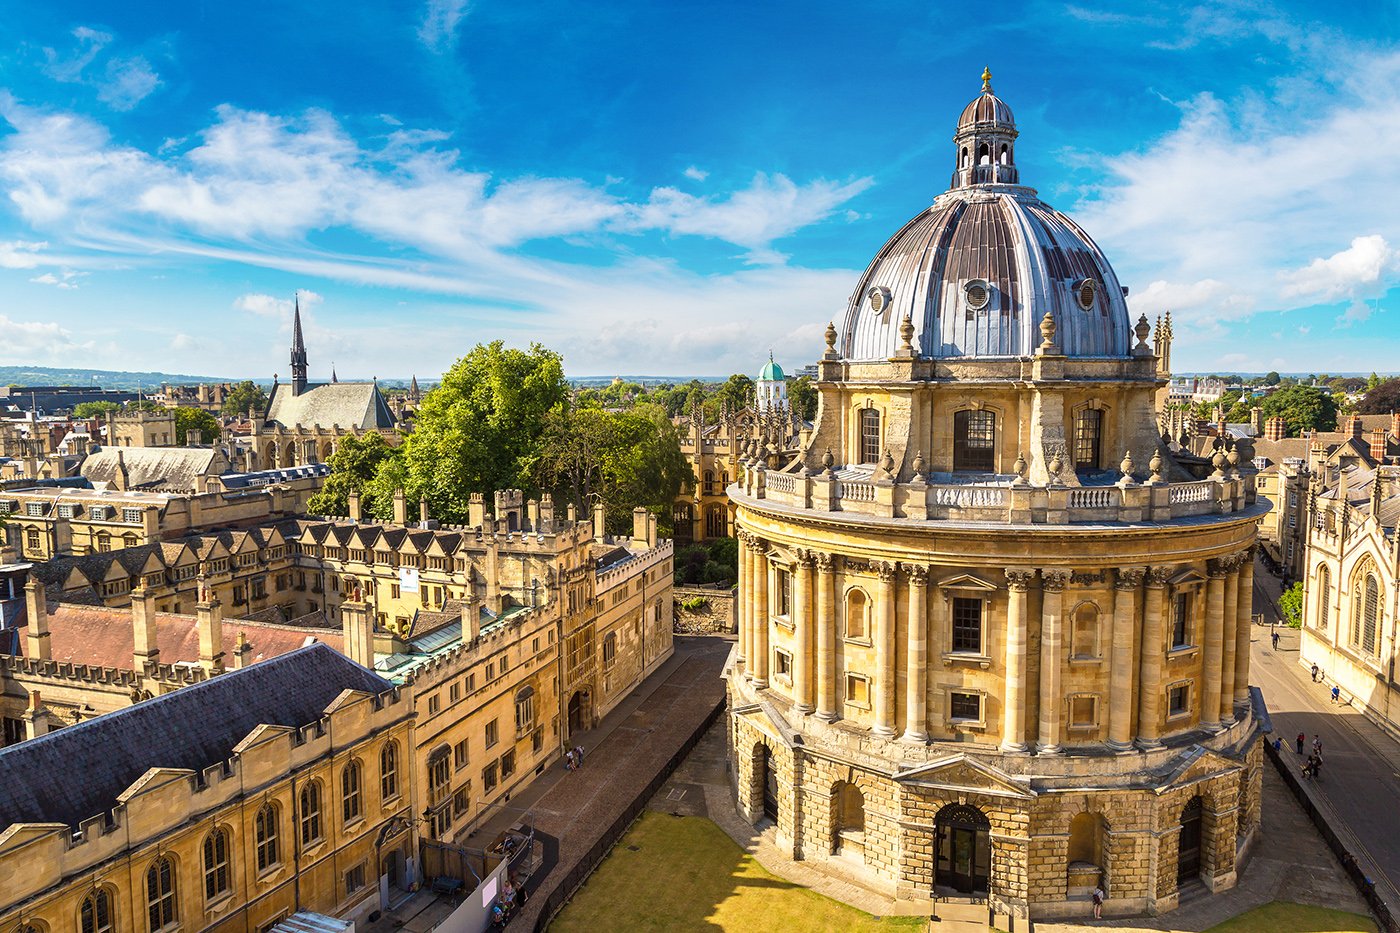 An aerial view of Oxford, with the Radcliffe Camera and University Buildings visible in the distance